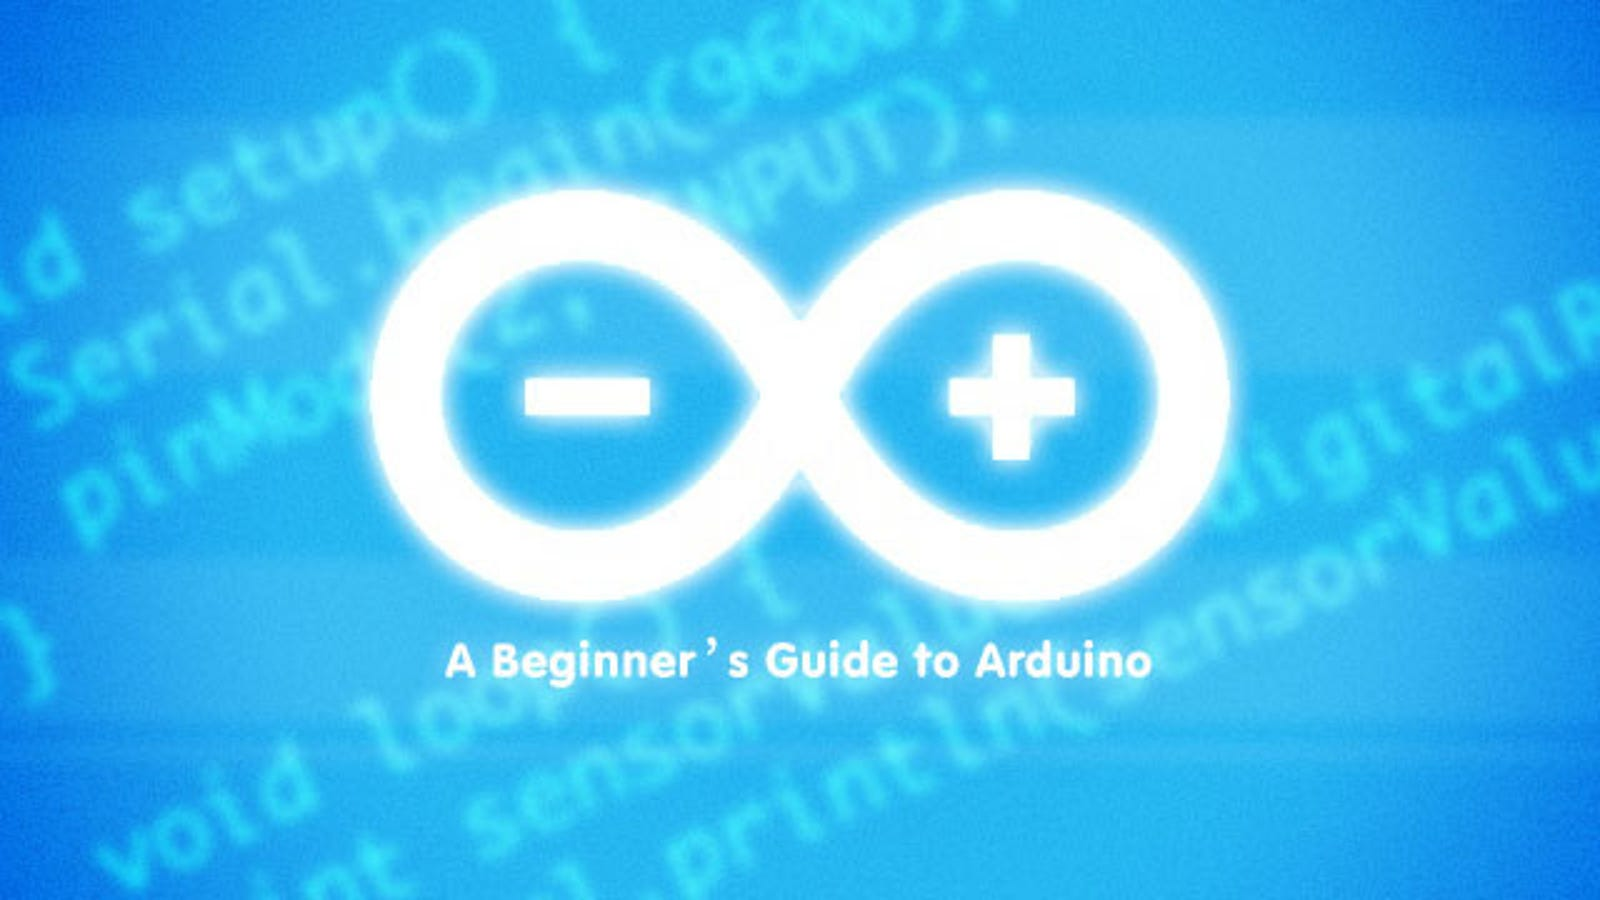 How To Start Making Your Own Electronics With Arduino And Other The Same Instructables Page Also Gives A Circuit For Single Flashing Peoples Code